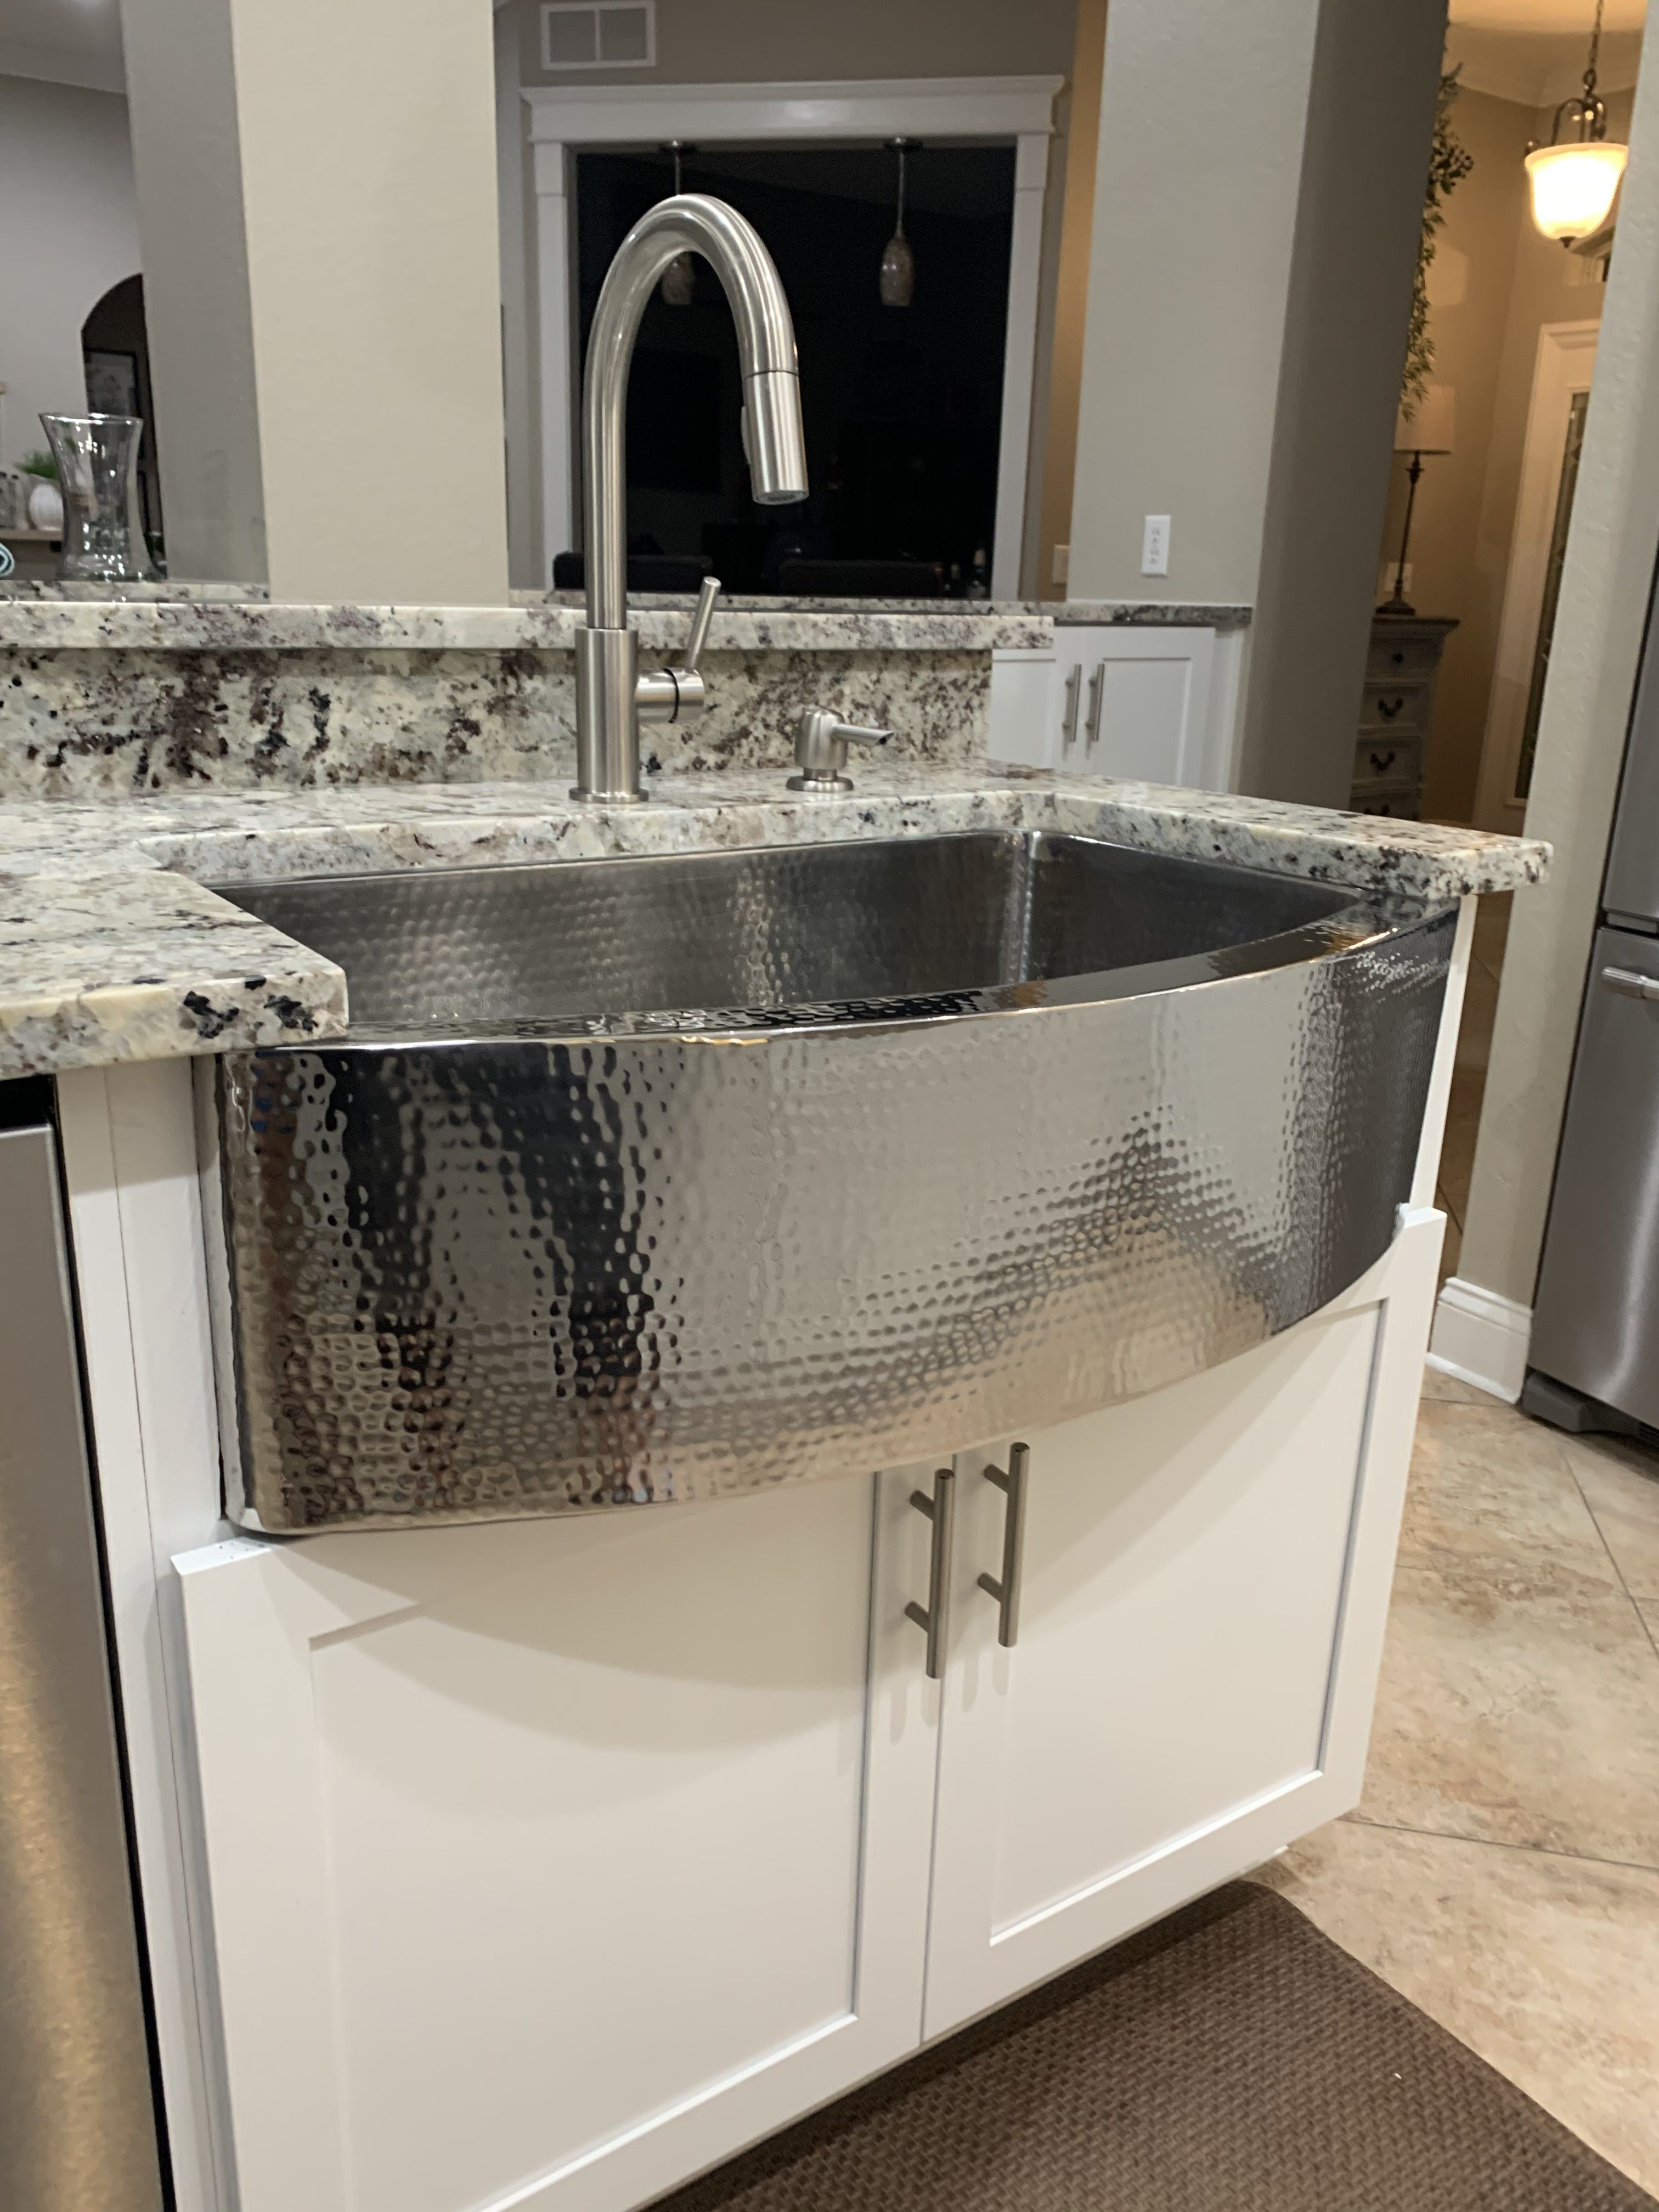 Hammered Stainless Steel Convex Rounded Farmhouse Sink In 2020 Farmhouse Sink Sink Home Fireplace